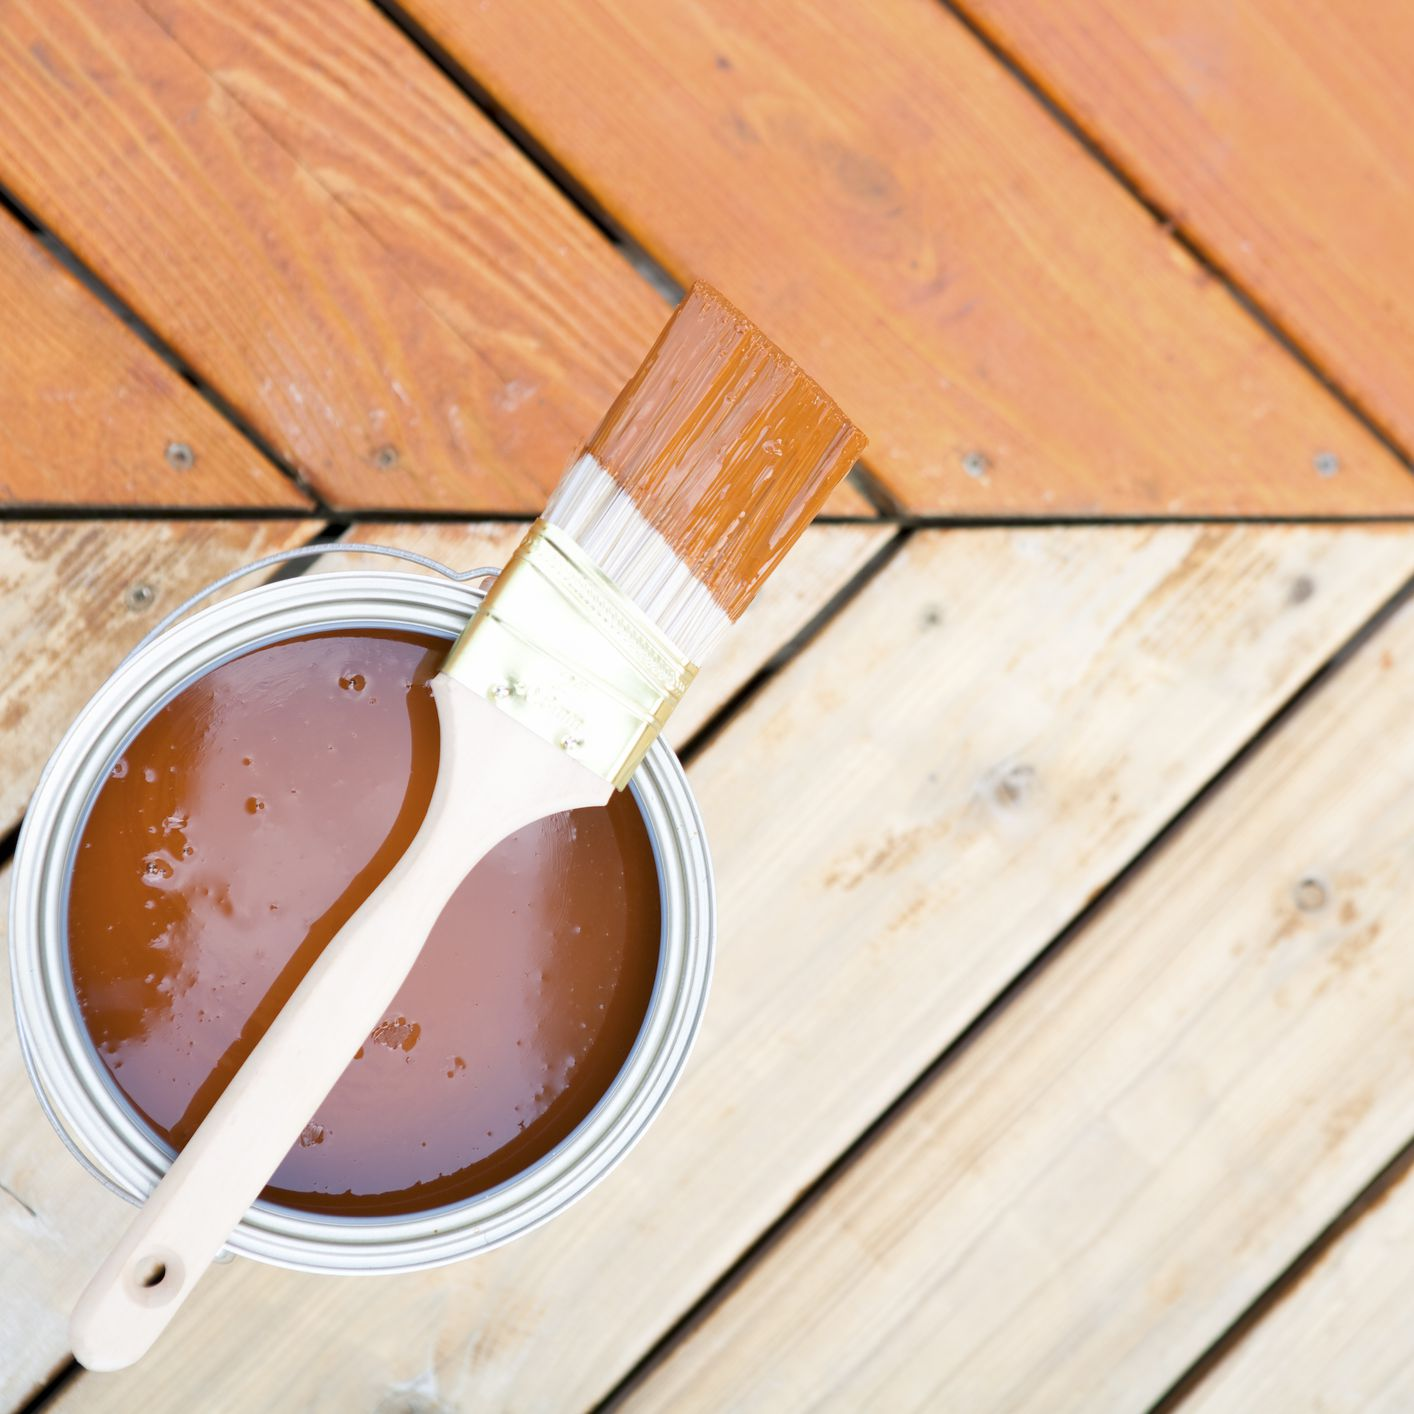 How To Stain A Wood Deck